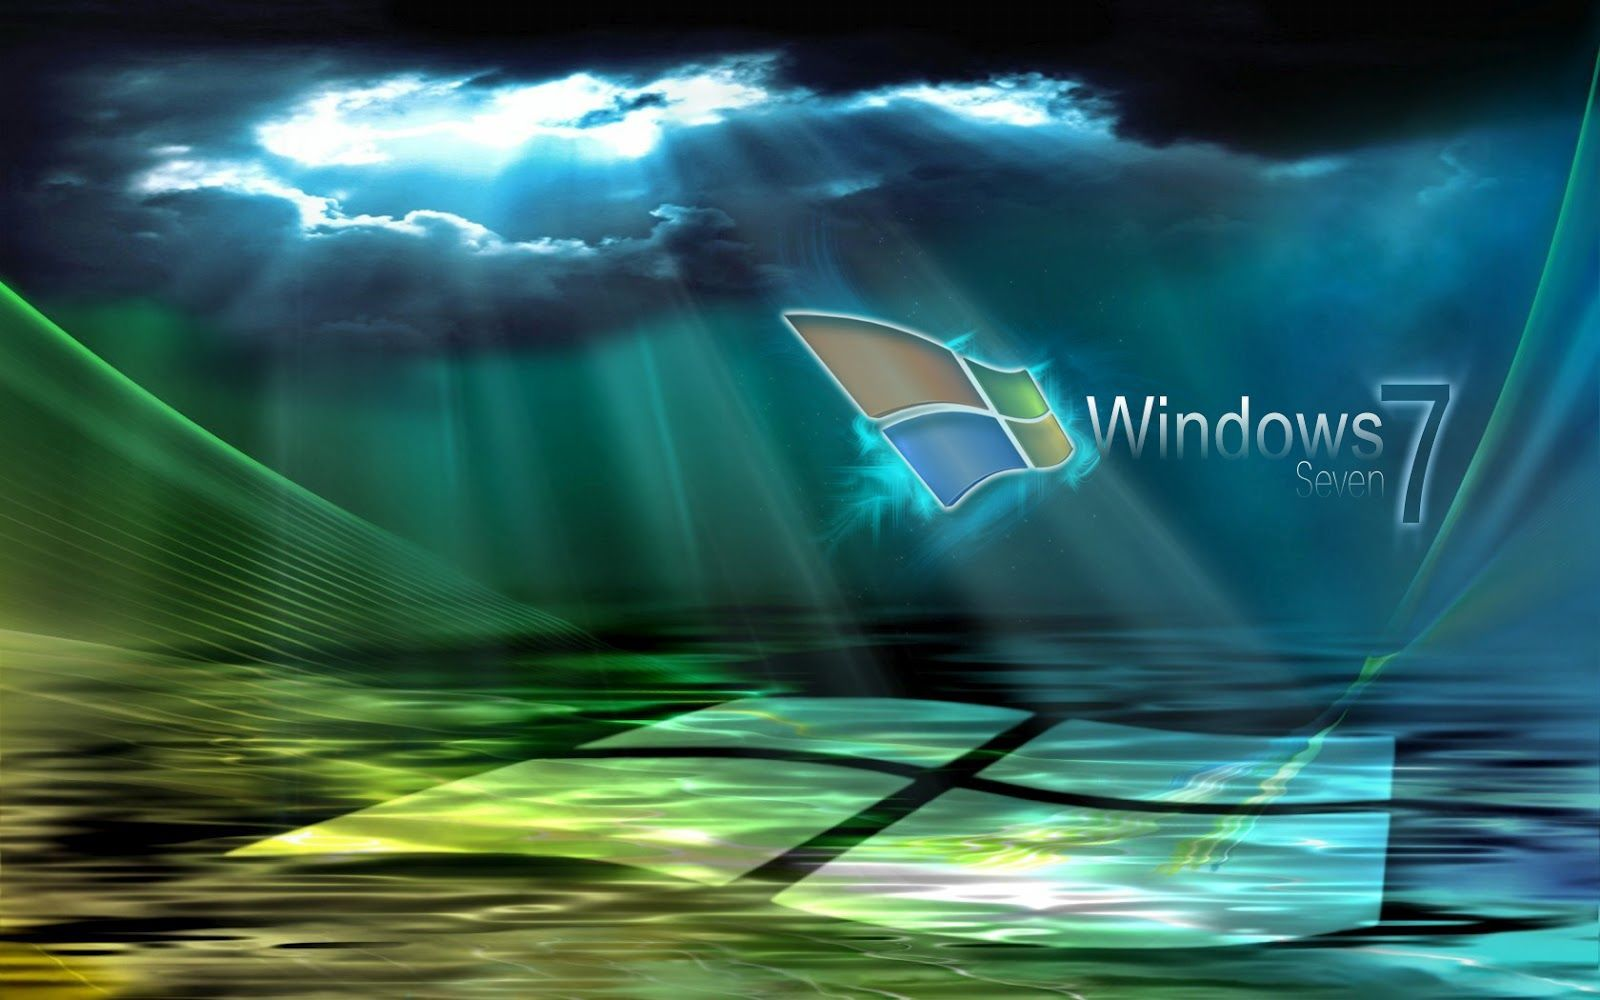 Wallpaper Pc Windows 7